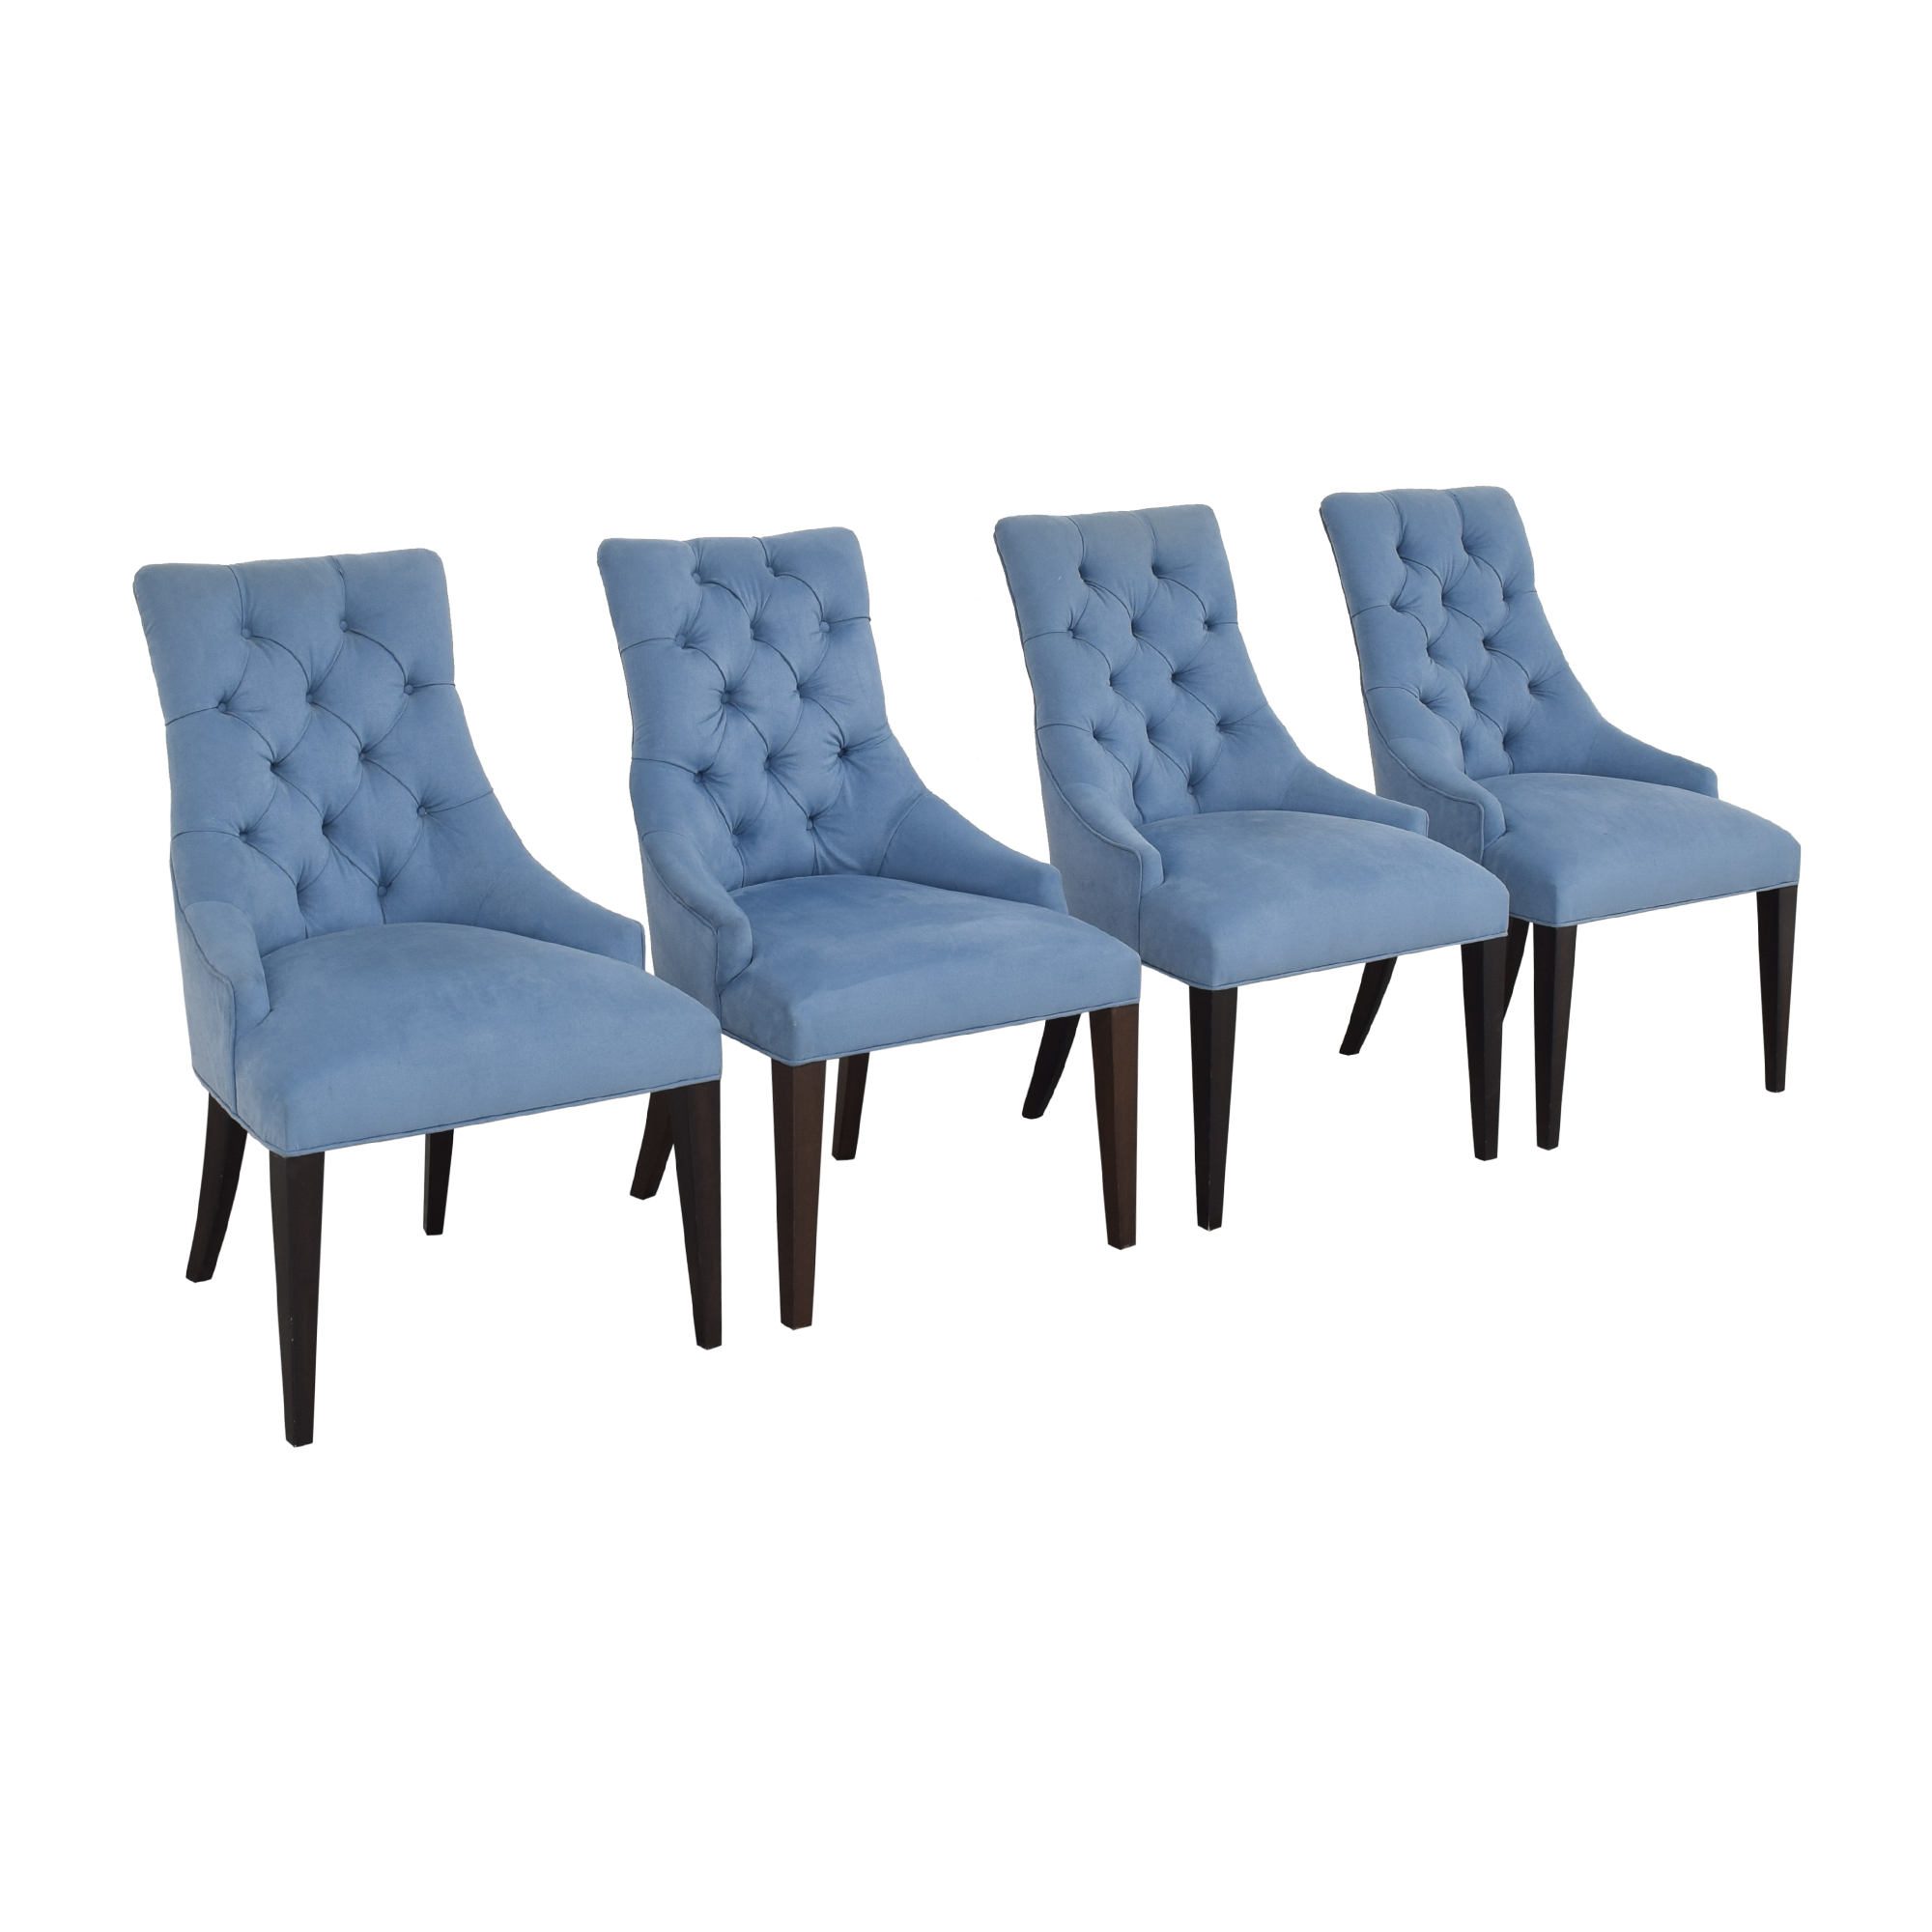 Tufted Back Dining Chairs discount